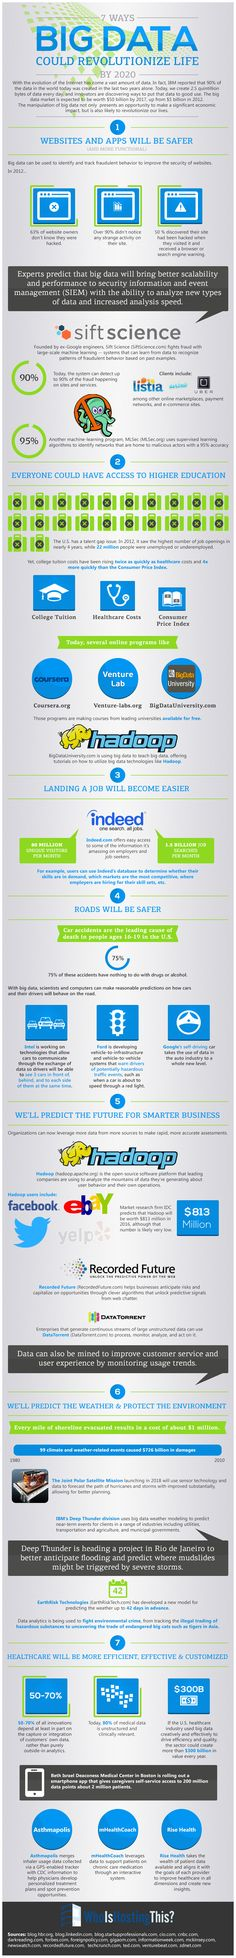 7 Ways #BigData Could Revolutionize Life By 2020 [Infographic] by Who Is Hosting This: The Blog